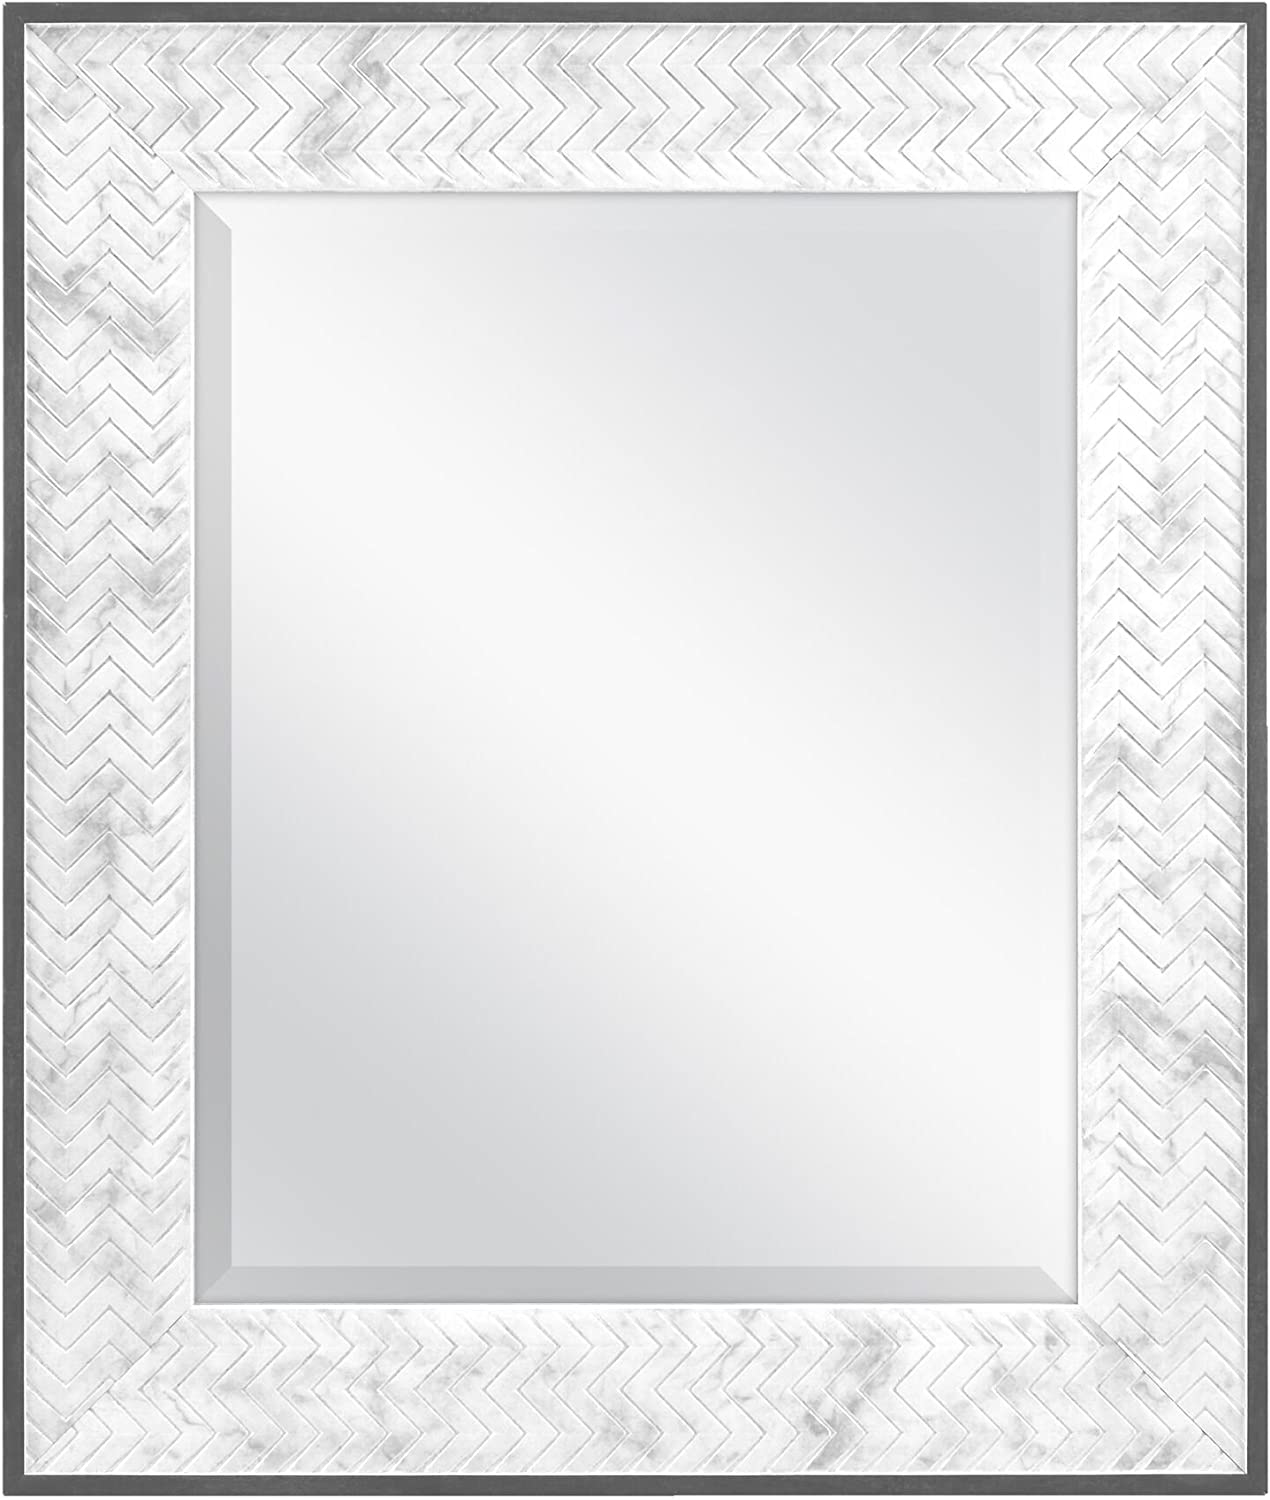 MCS 16x20 Inch Online limited product Chevron 22x26 Overall 22 Size Marble x Mirror Great interest